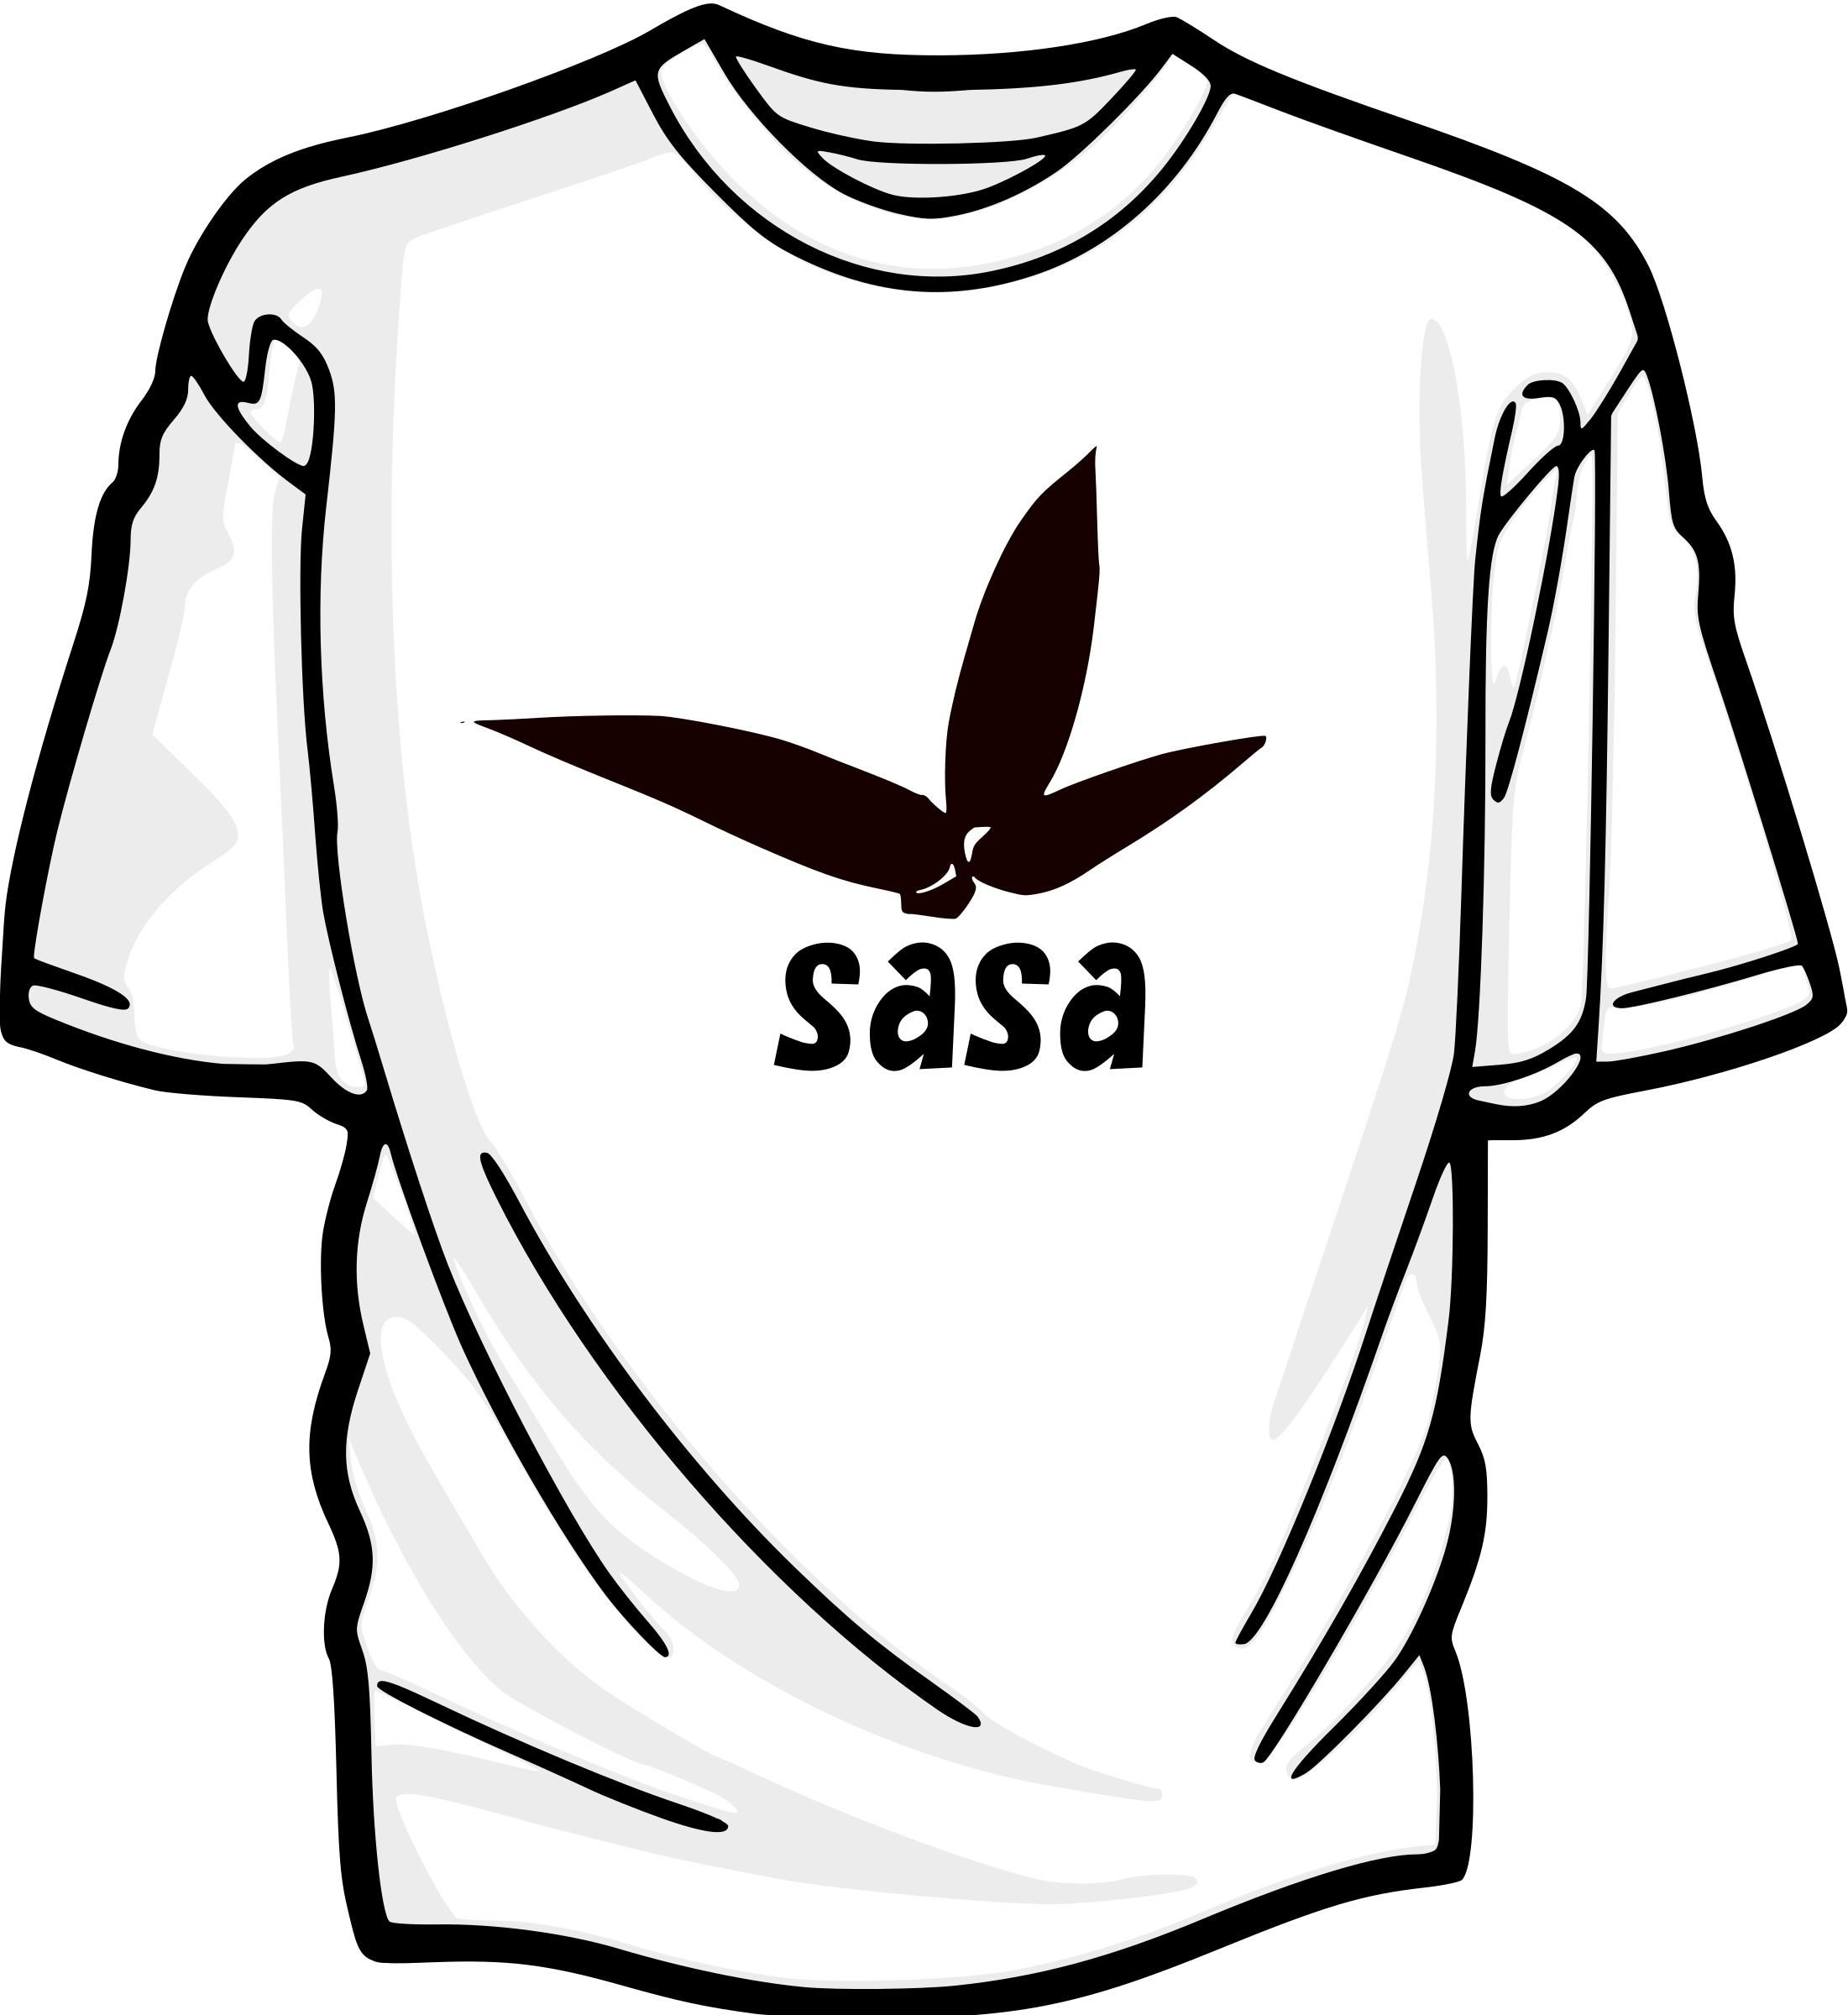 Sasa Logo - Tshirt with sasa logo Icons PNG - Free PNG and Icons Downloads